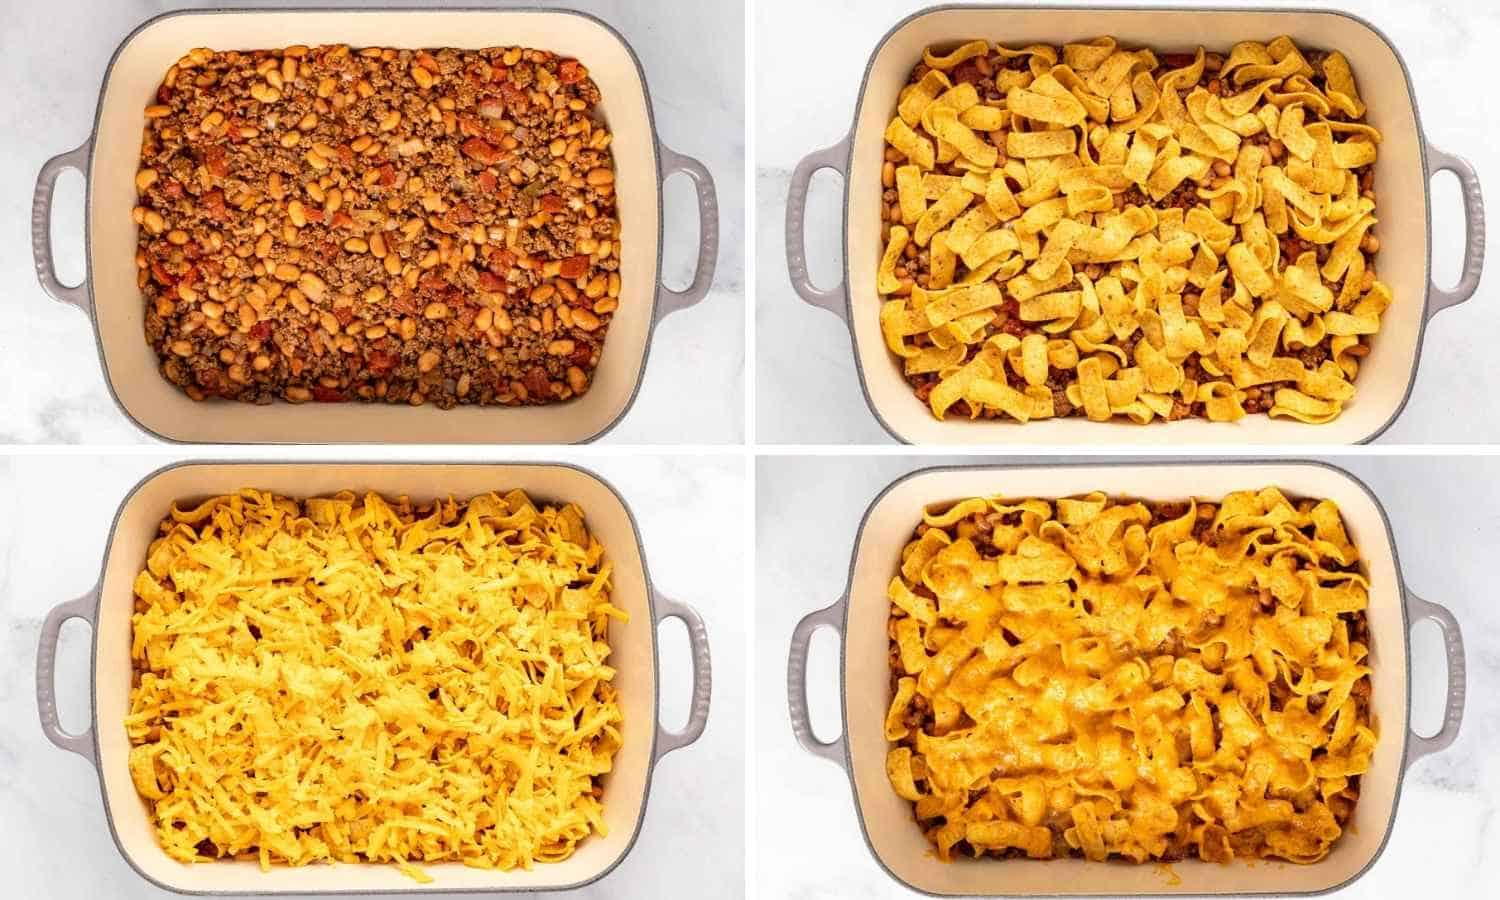 Collage of four images showing how to fill a casserole dish with taco meat, and top it with cheese and Frito chips.